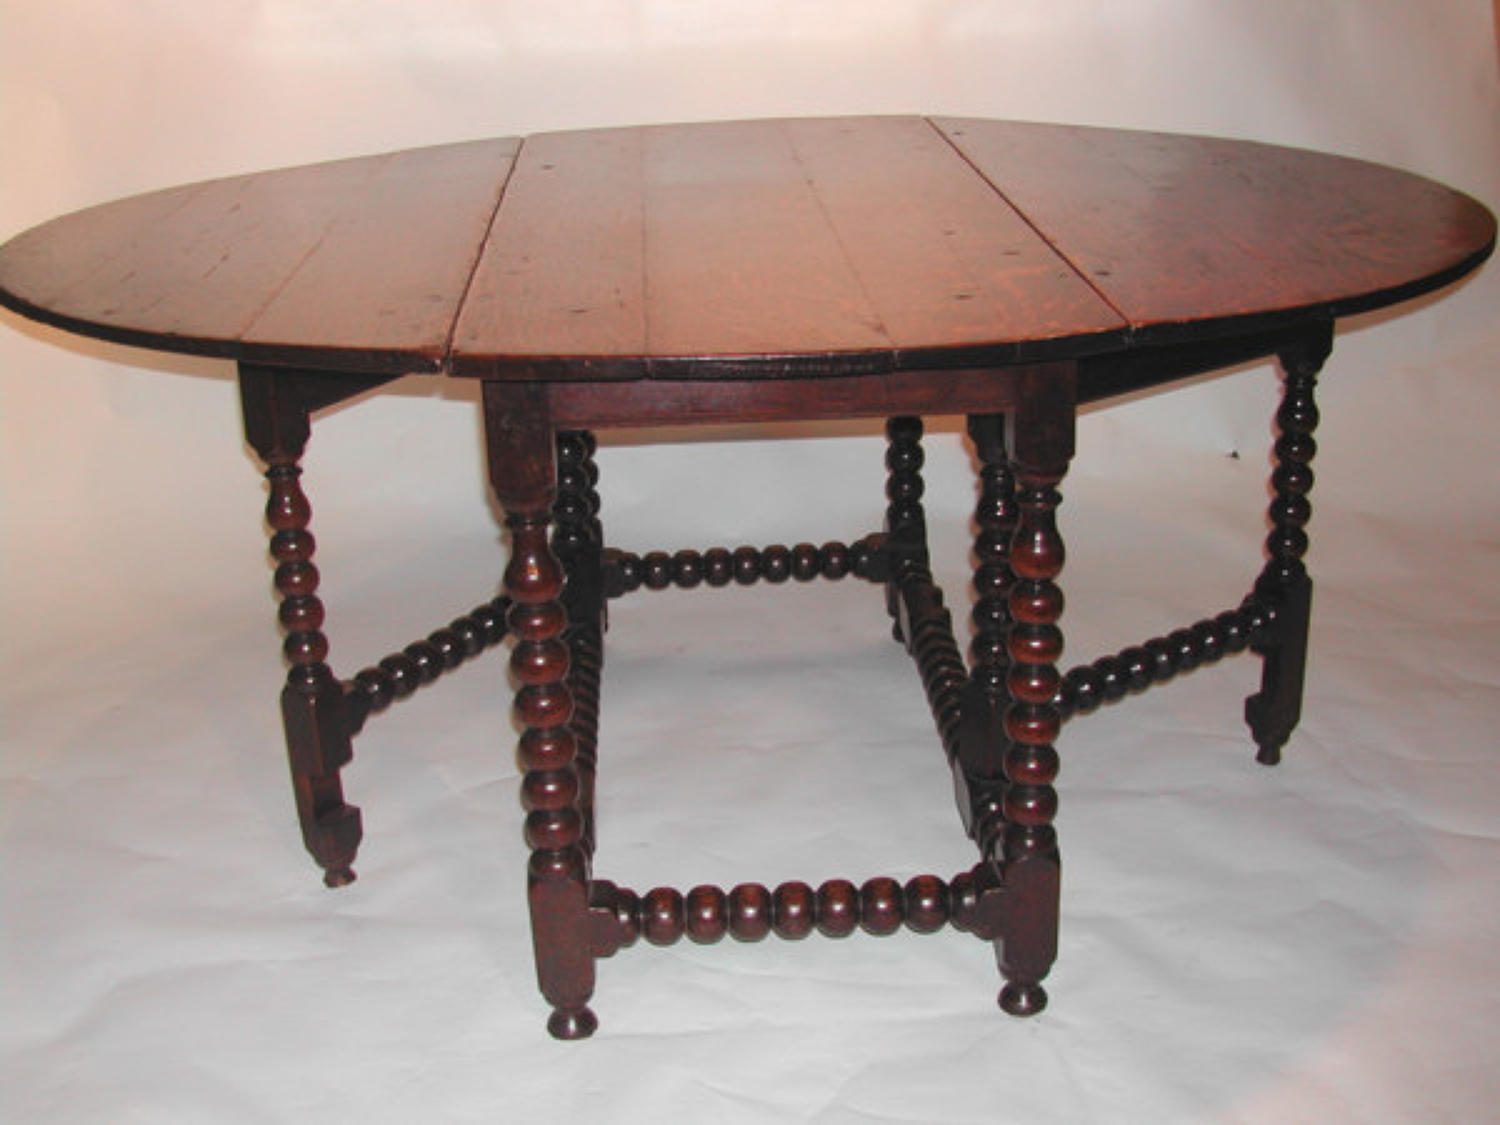 A very good 17thc Oak Gateleg Table. English C1660 - 80